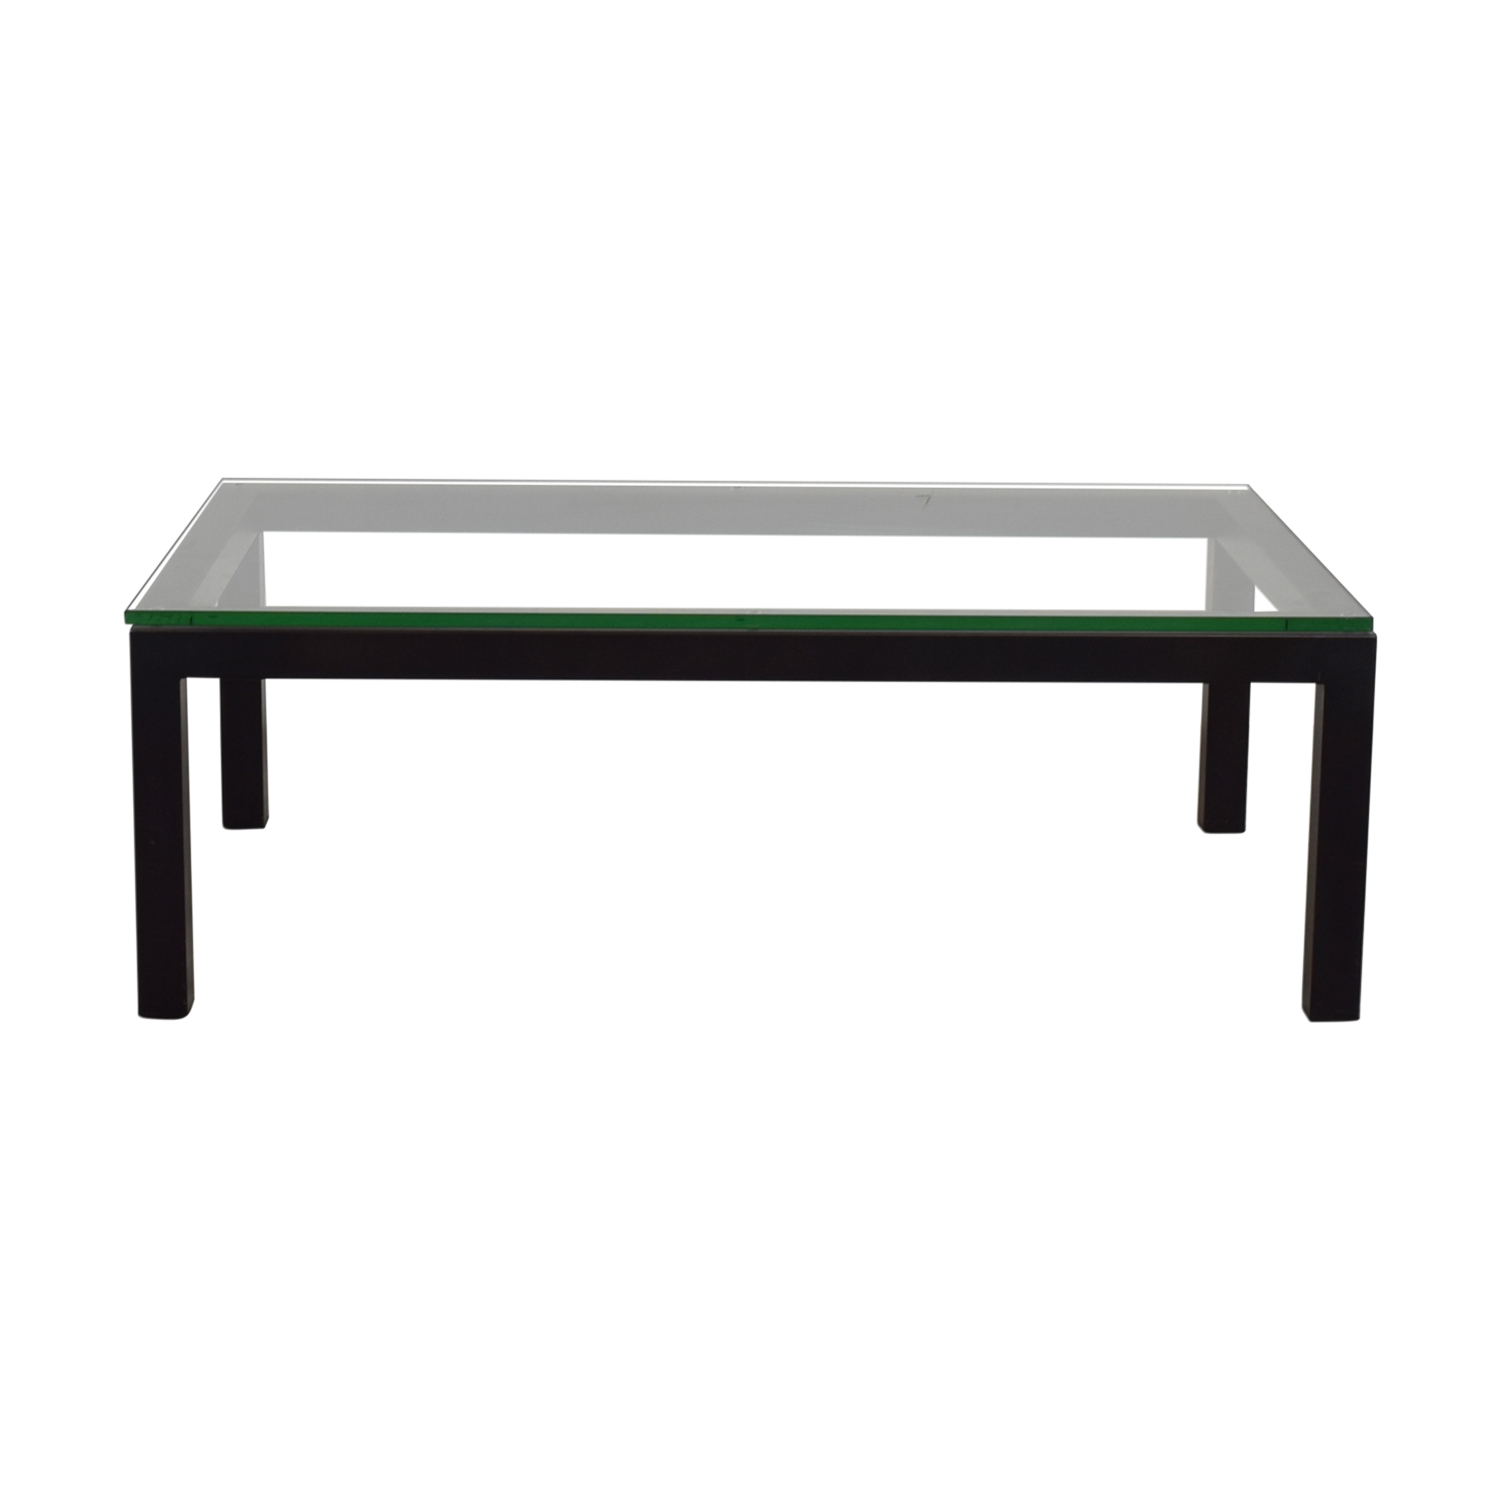 Crate & Barrel Crate & Barrel Parsons Glass Top Coffee Table used